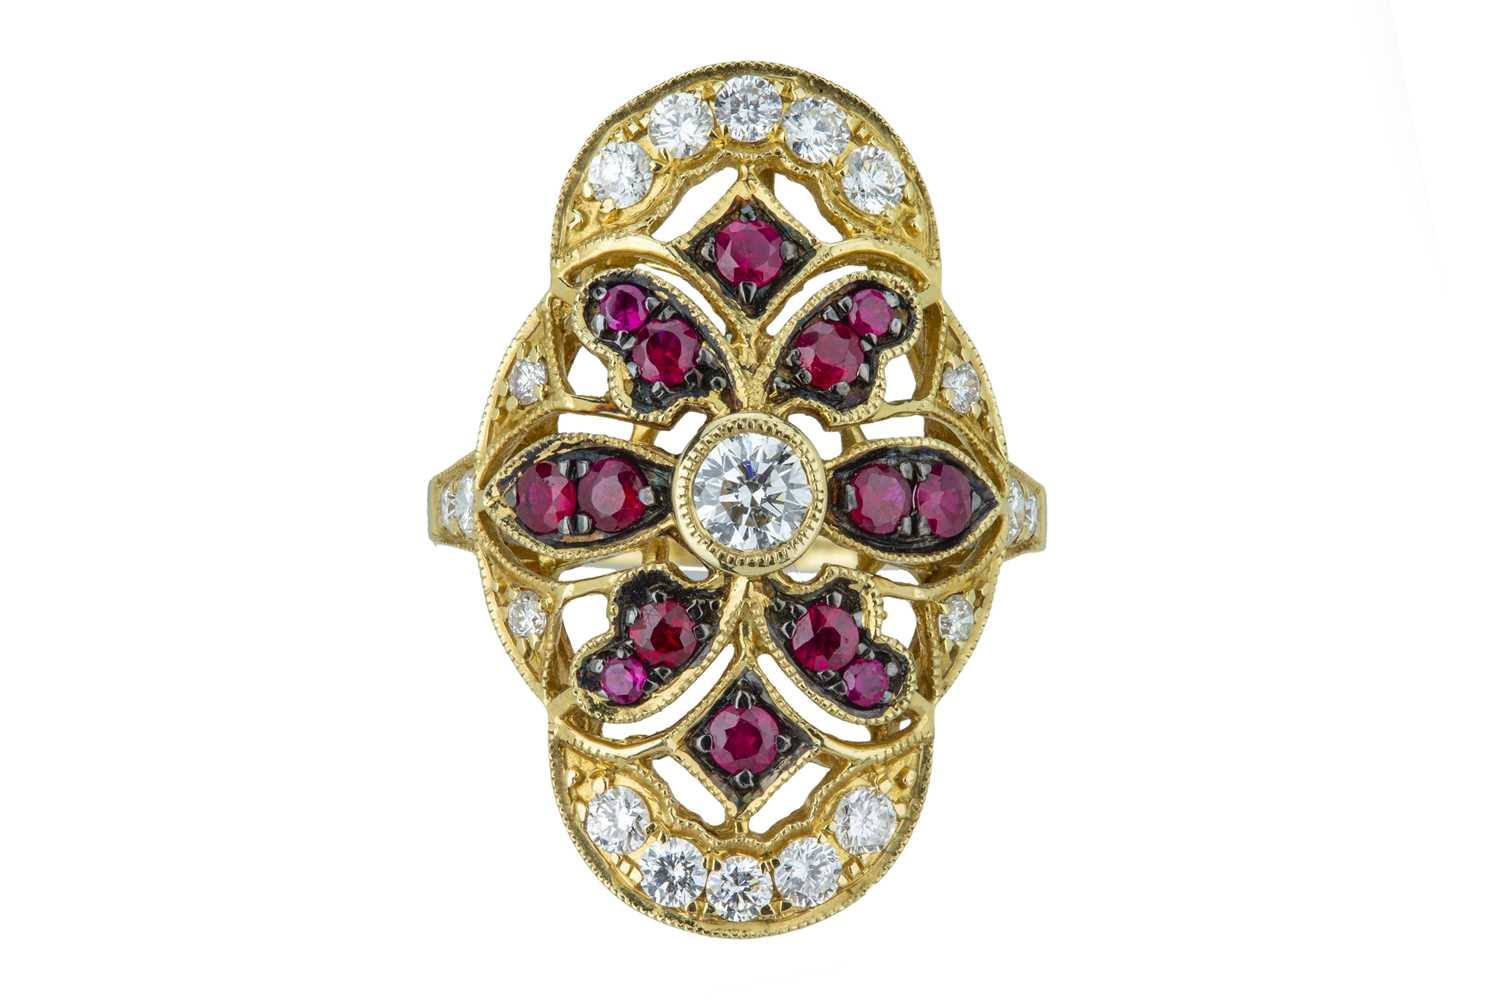 Lot 29 - An exquisite ruby and diamond dress ring.